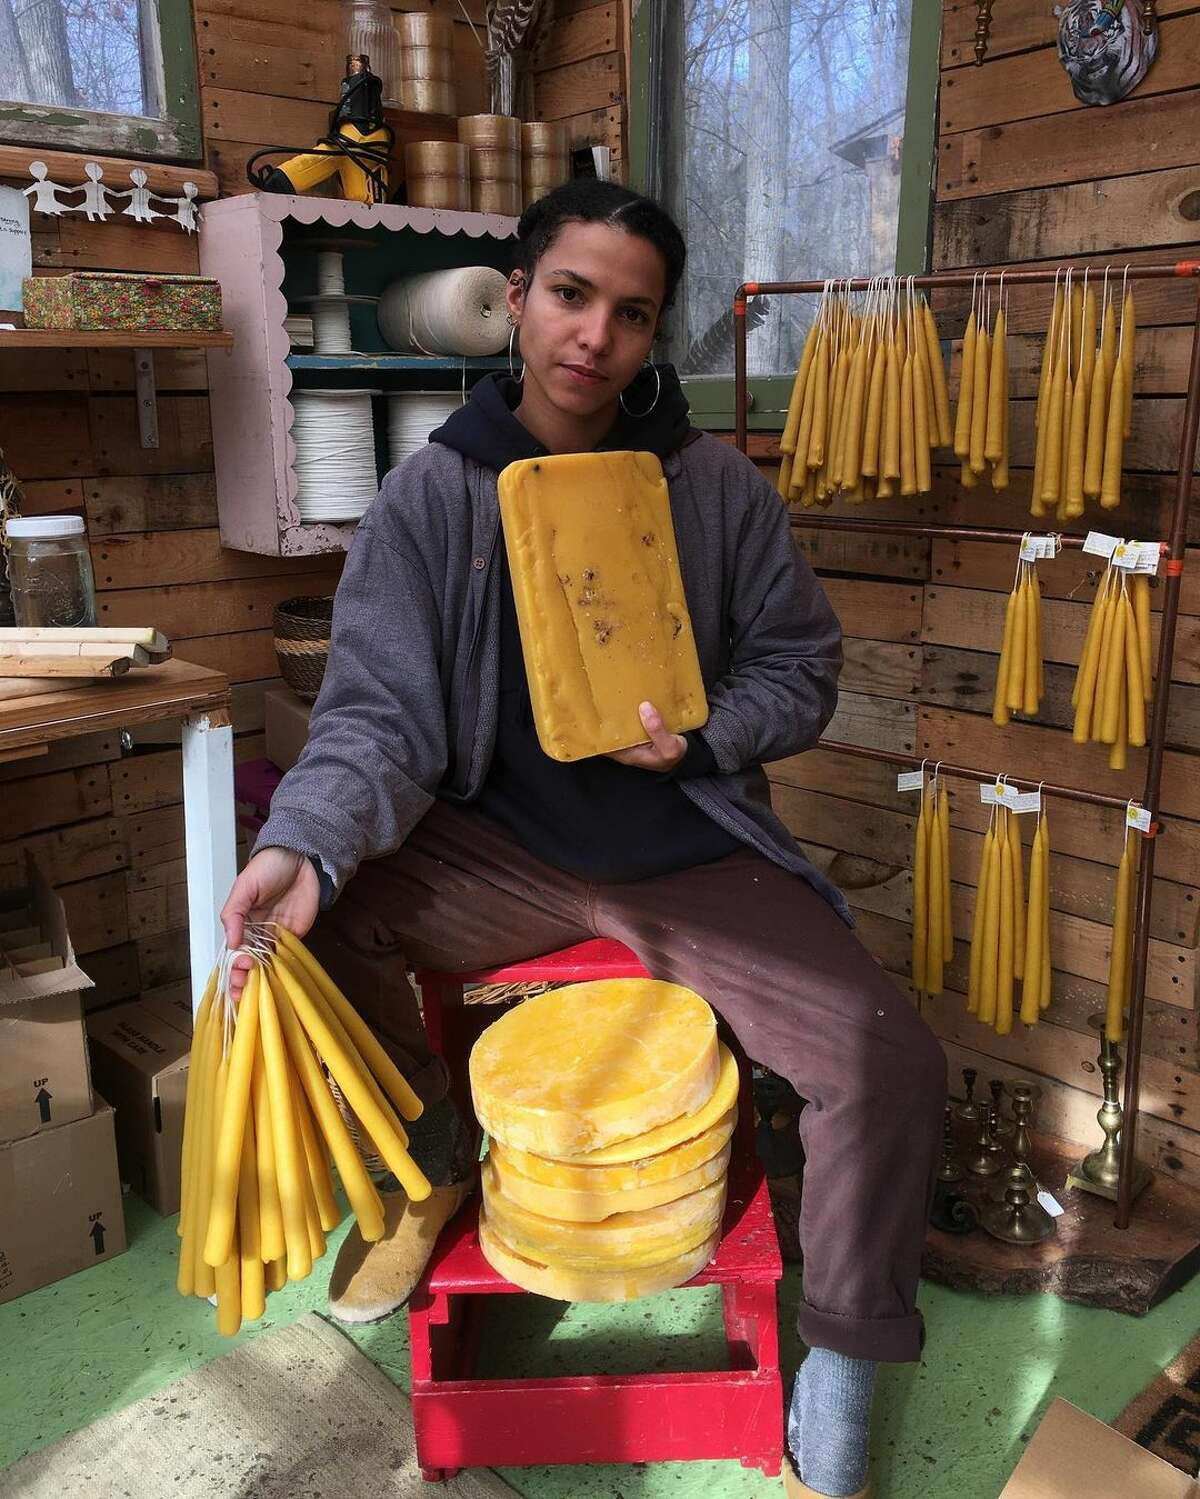 Hudson Valley maker Alysia Mazzella is committed to sustainably sourcing beeswax from New York state farms only - even if that limits her access to beeswax and, as a result, how many candles she can produce.